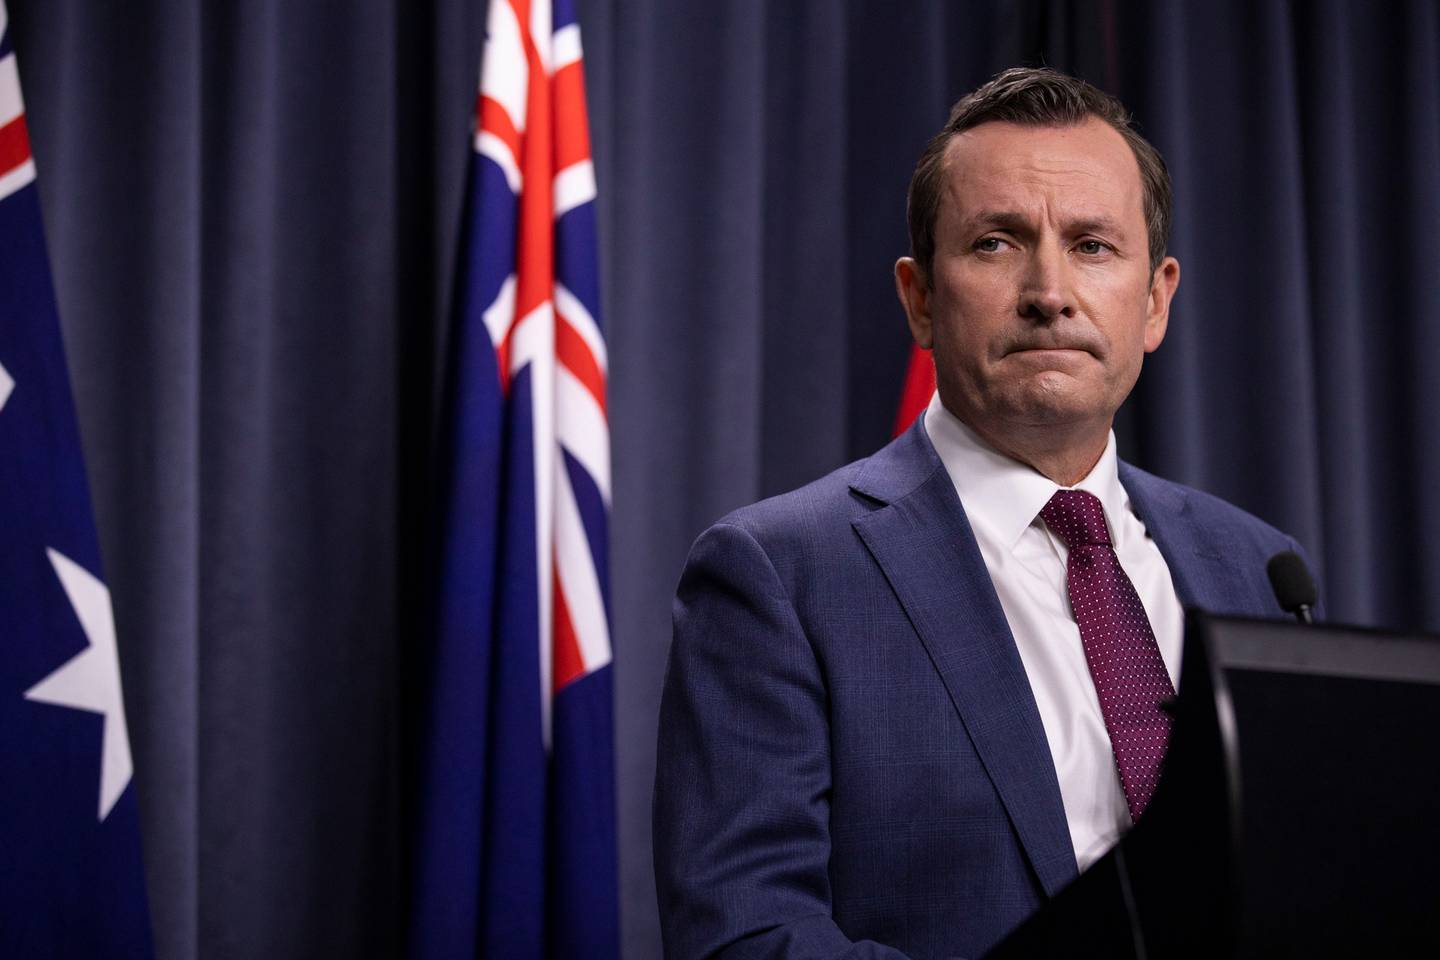 Western Australian Premier Mark McGowan speaks to the media during a press conference. Photo / Getty Images